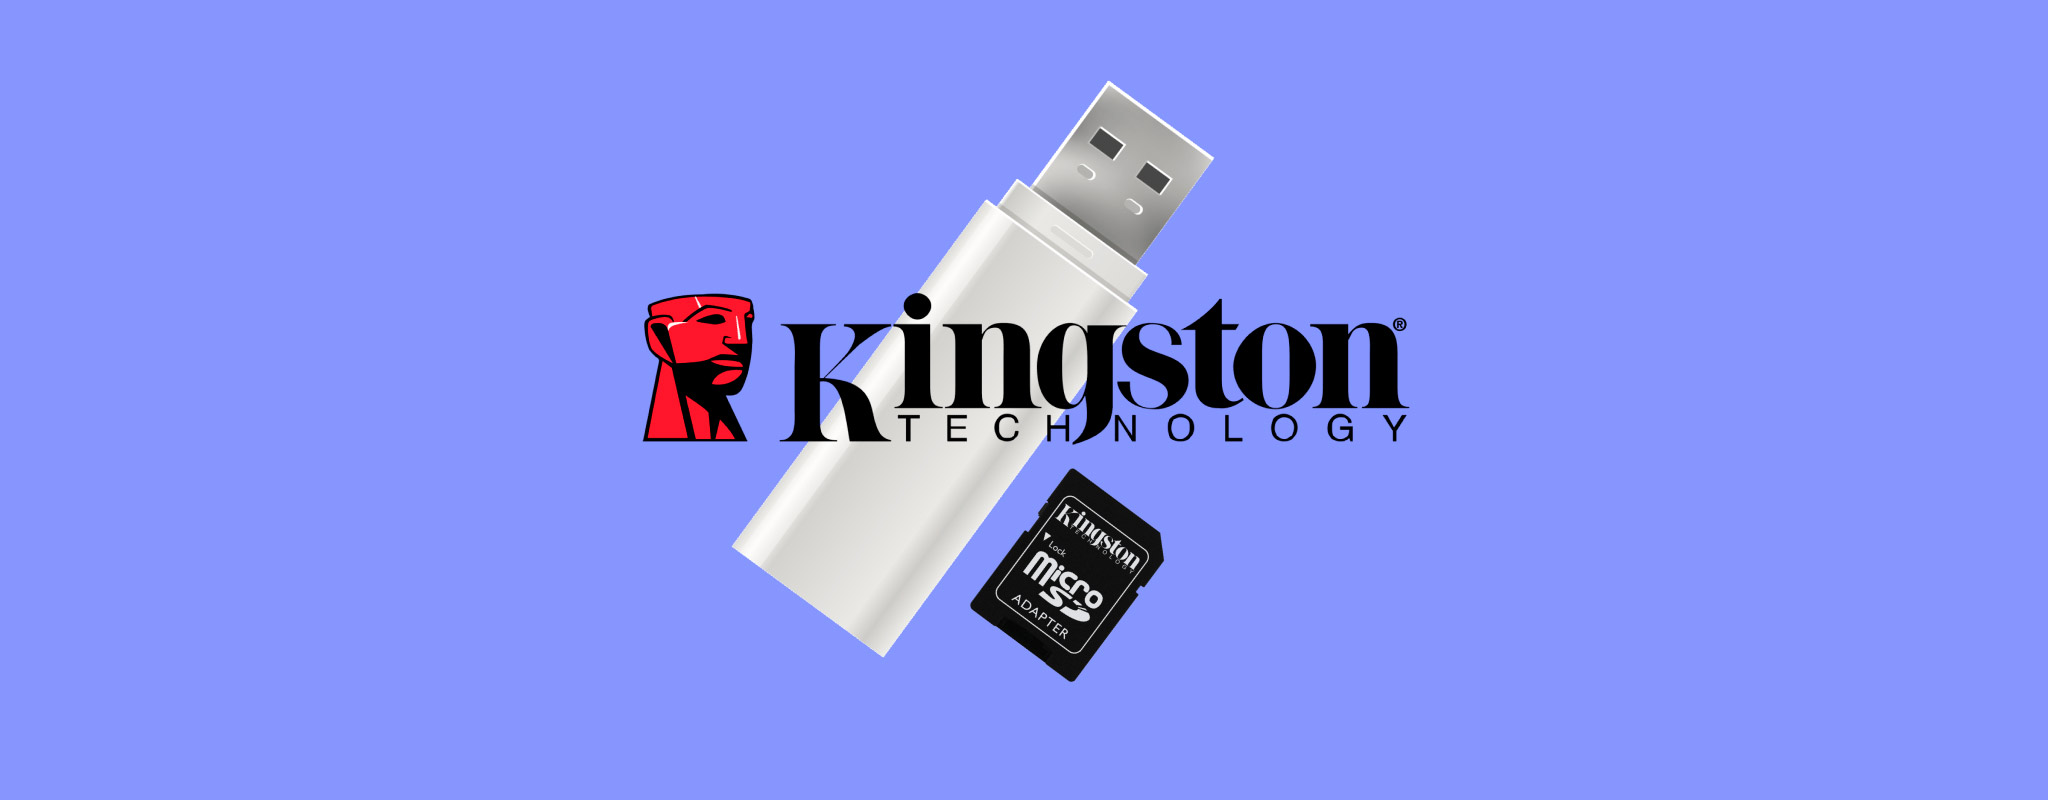 Recover data from Kingston devices